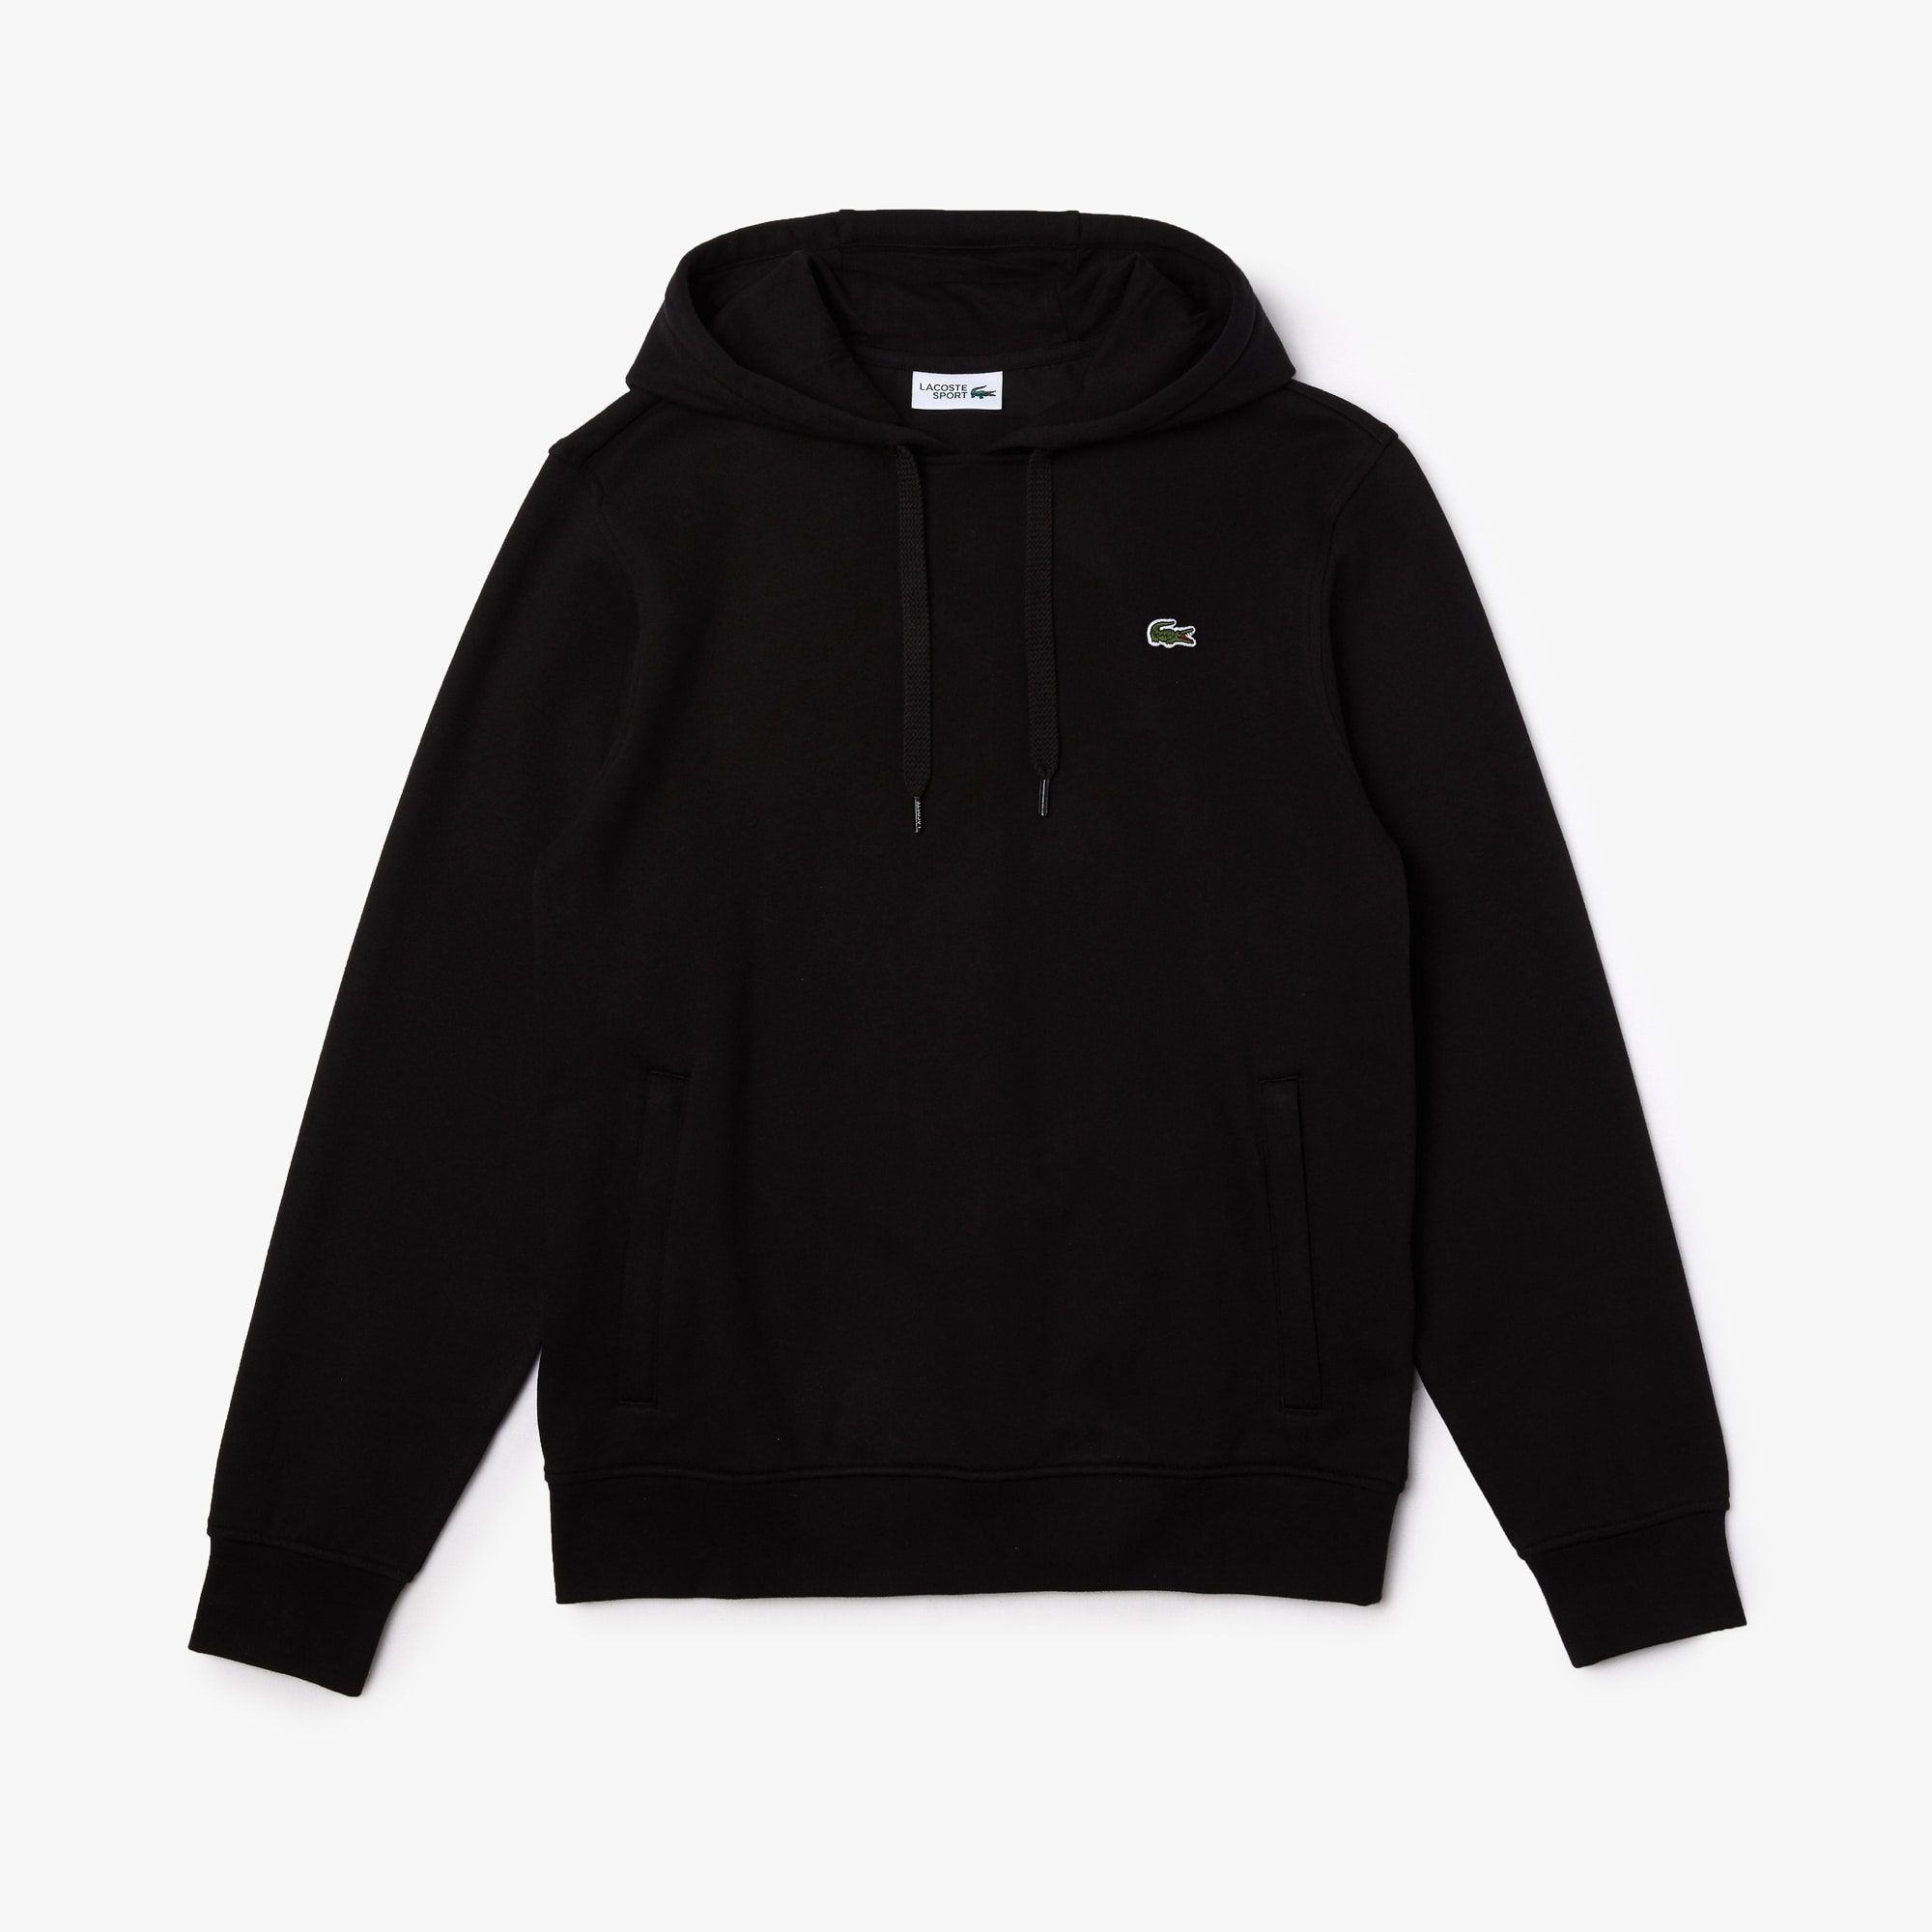 Mens 라코스테 Lacoste SPORT Hooded Fleece Sweatshirt